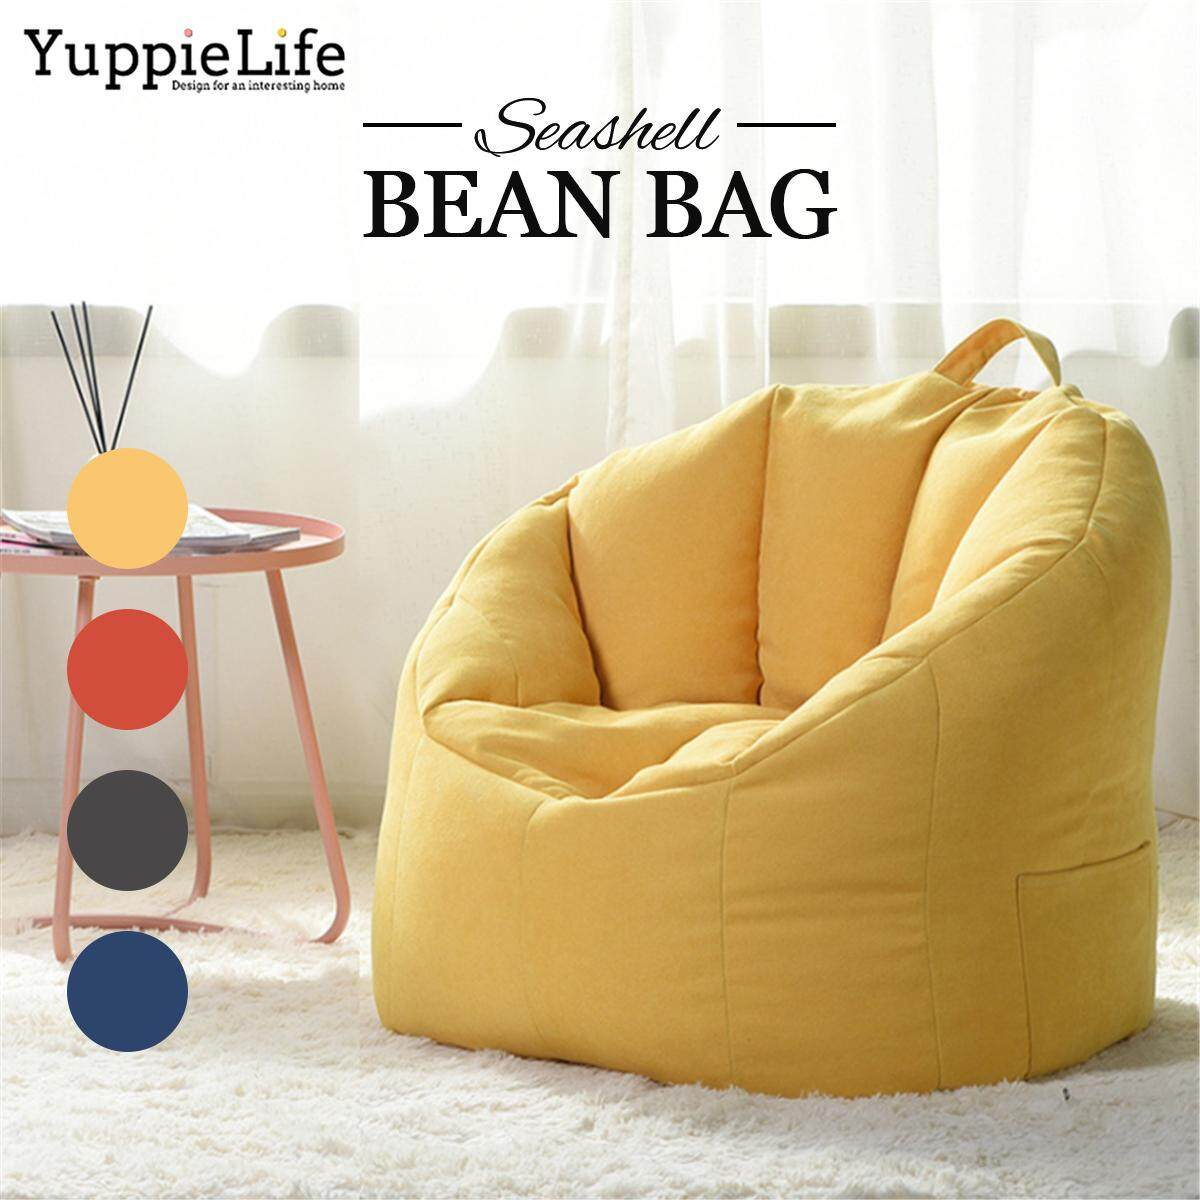 Prime Big Joe Milano Bean Bag Chair Multiple Colors Available Comfort For Kids Adult Yuppielife Large Bean Bag Chairs Couch Sofa Cover Indoor Lazy Lounger Machost Co Dining Chair Design Ideas Machostcouk